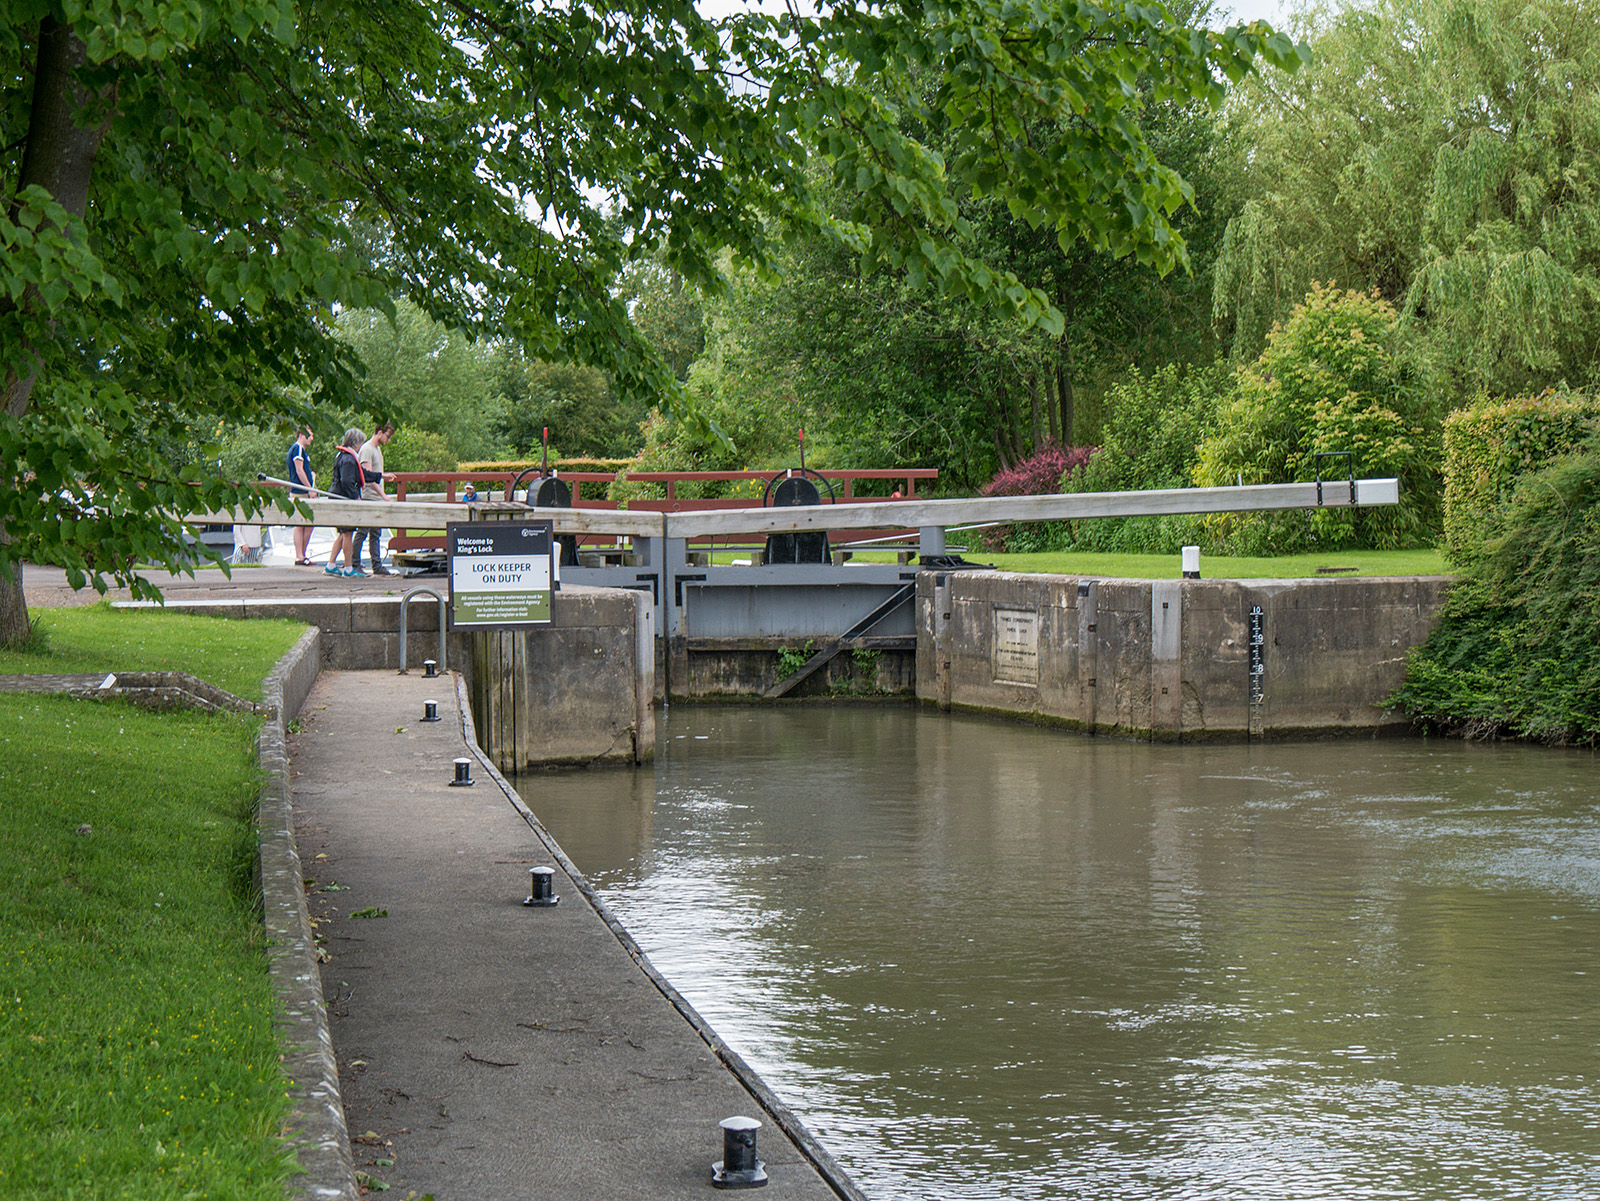 Approaching King's Lock - manually operated